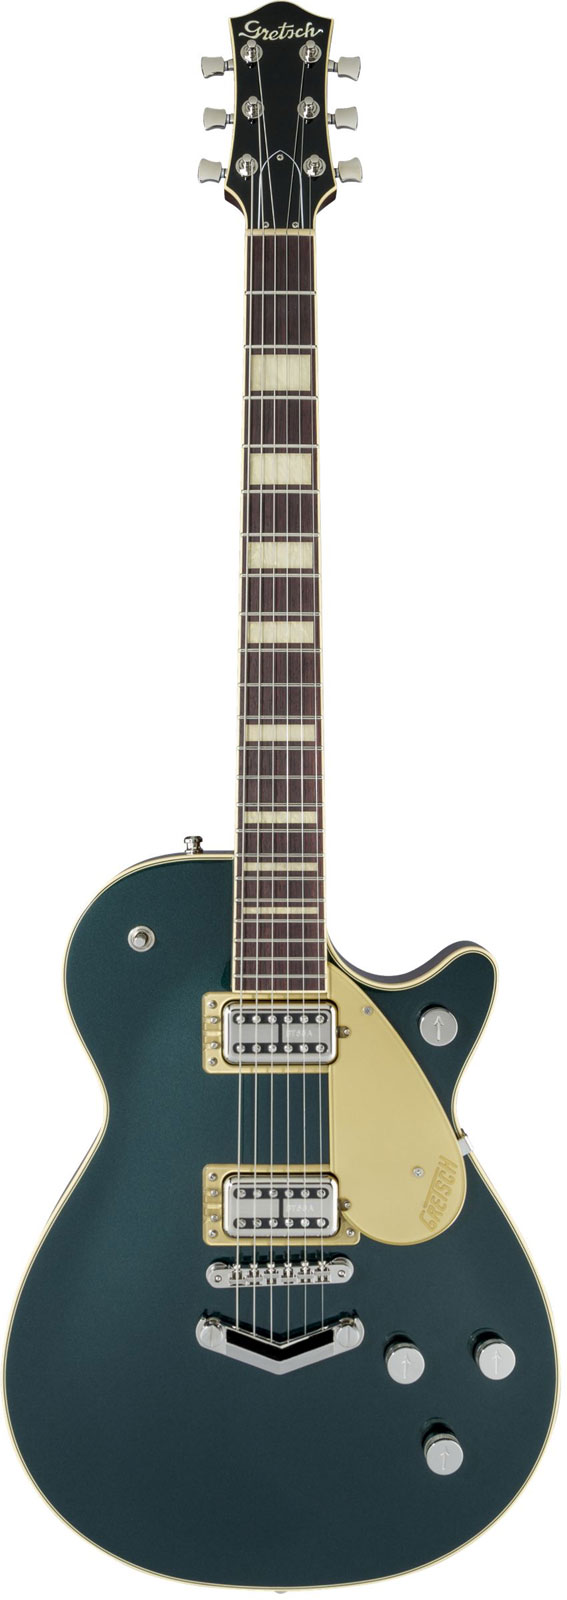 Gretsch Guitars G6228 Players Edition Jet Bt With V-stoptail Rw Cadillac Green